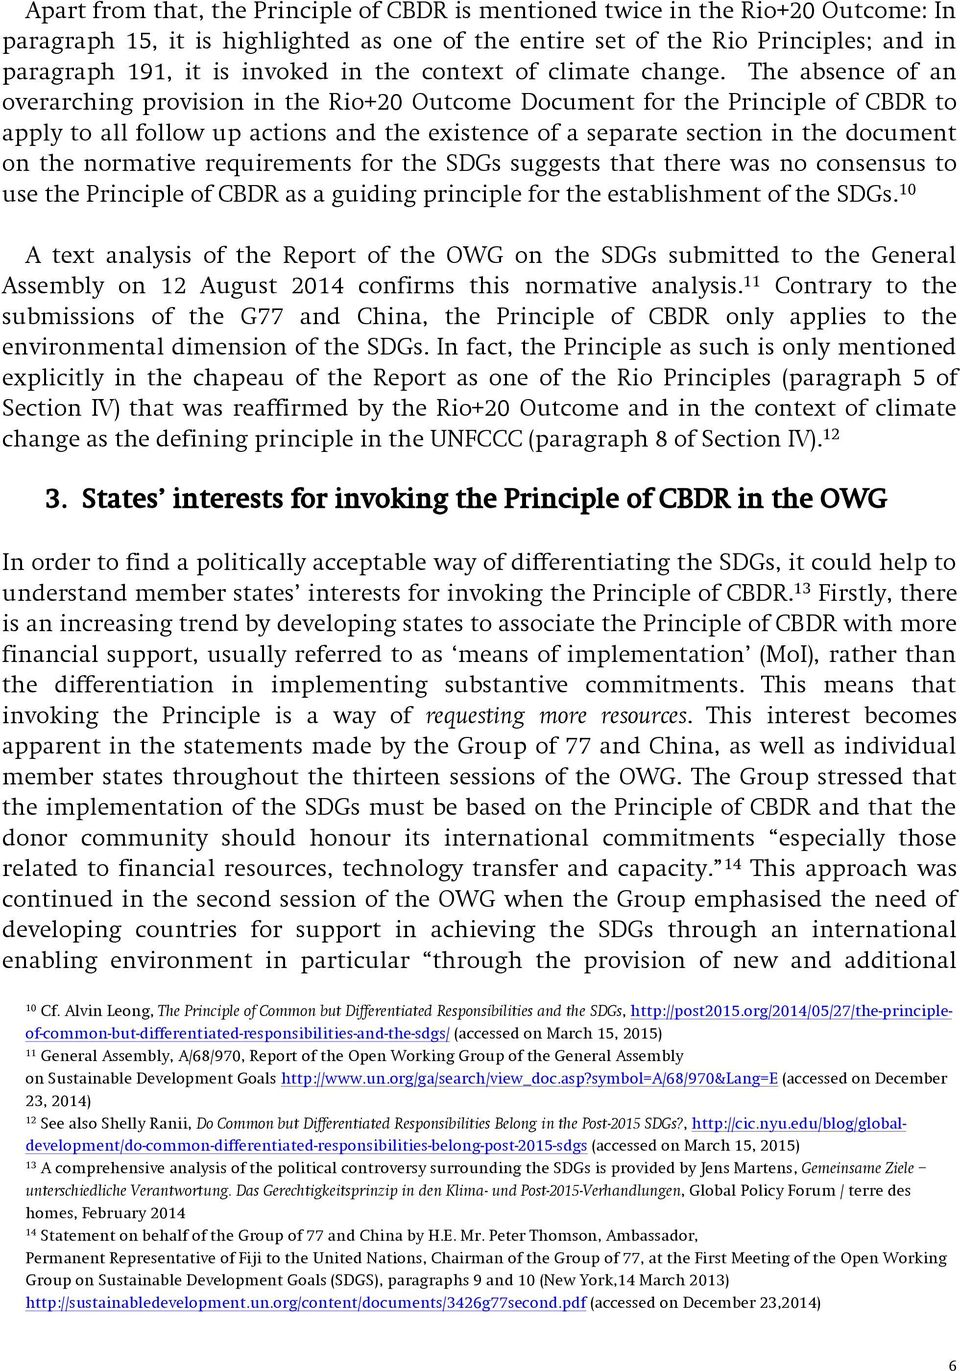 The absence of an overarching provision in the Rio+20 Outcome Document for the Principle of CBDR to apply to all follow up actions and the existence of a separate section in the document on the